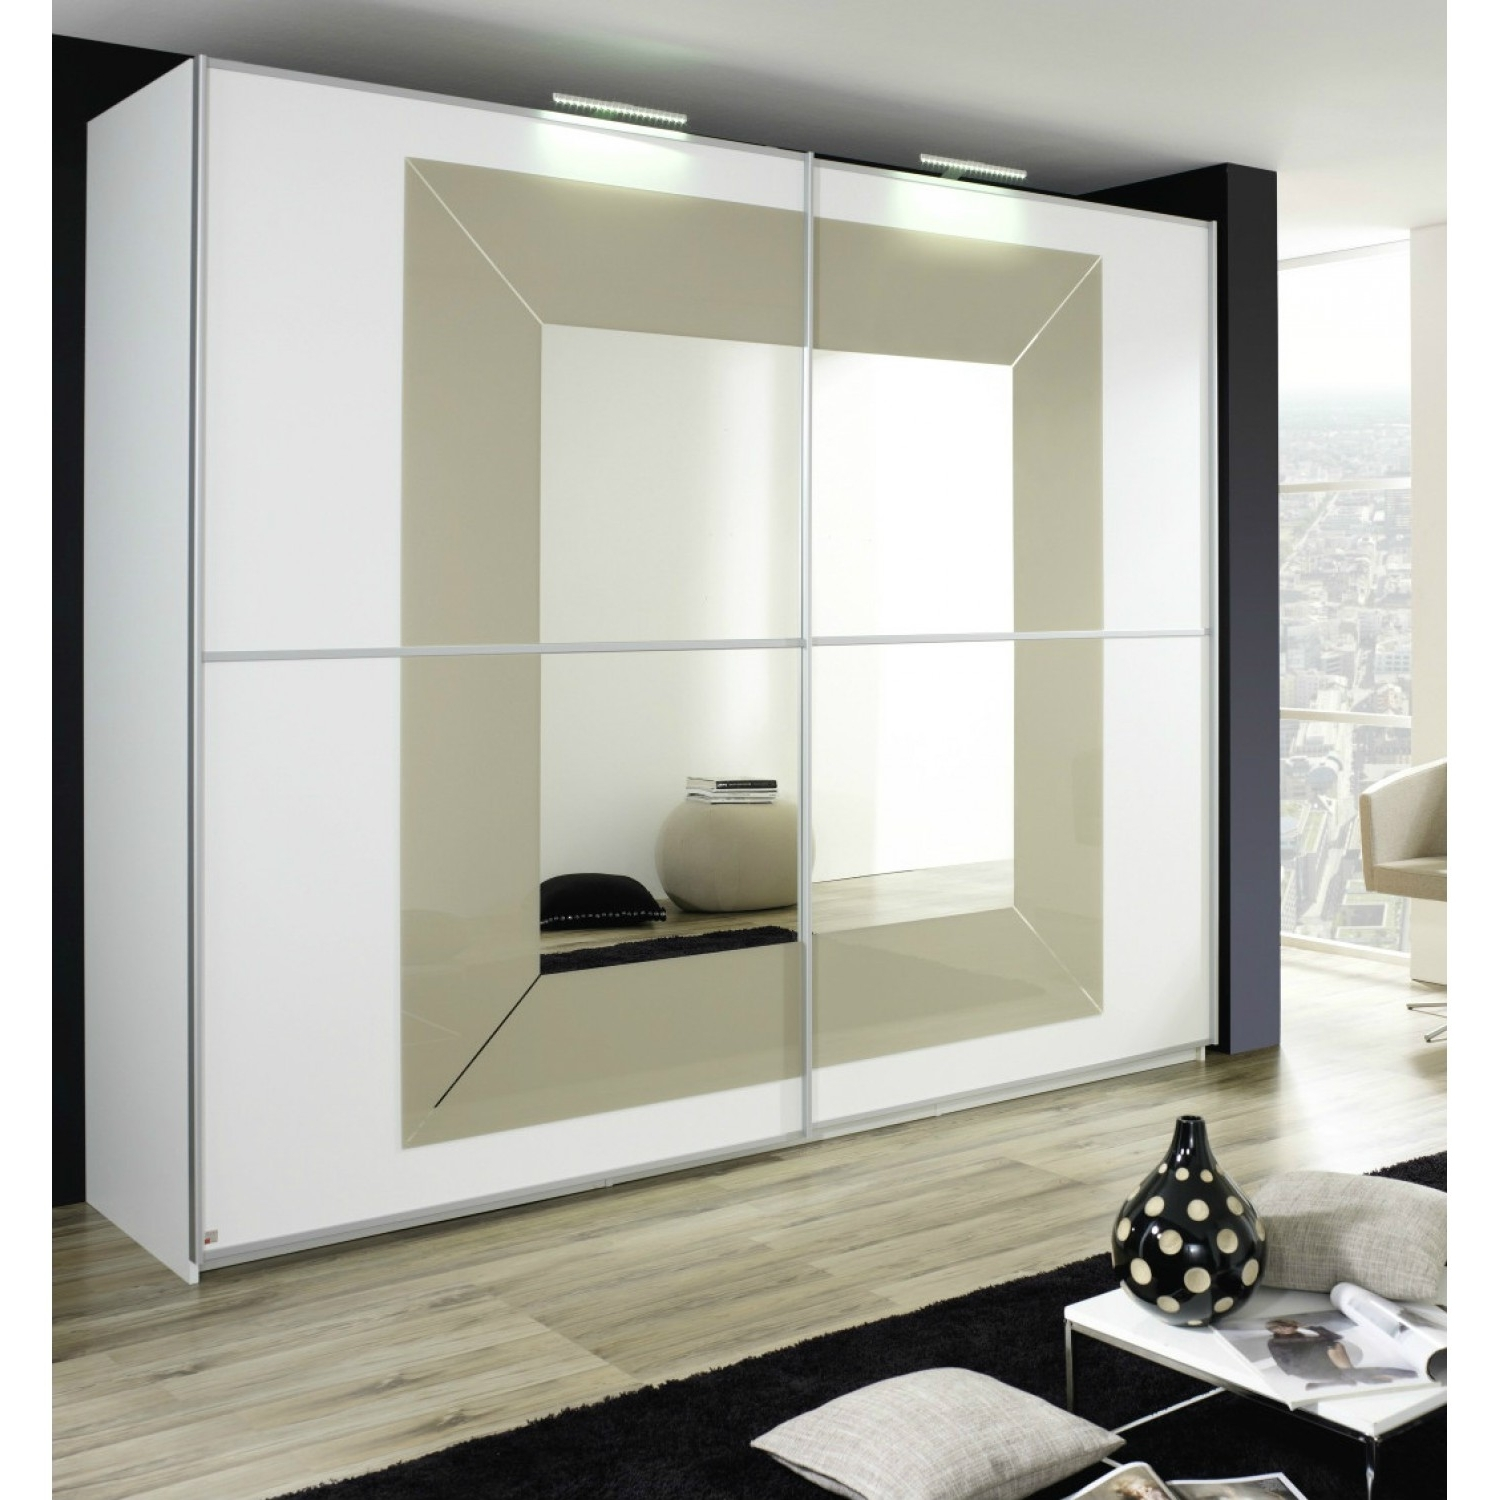 Rauch Sliding Wardrobes Regarding Well Known Focus Dialog Rauch Sliding Wardrobe (225Cm) – Wardrobes – Bedrooms (View 7 of 15)